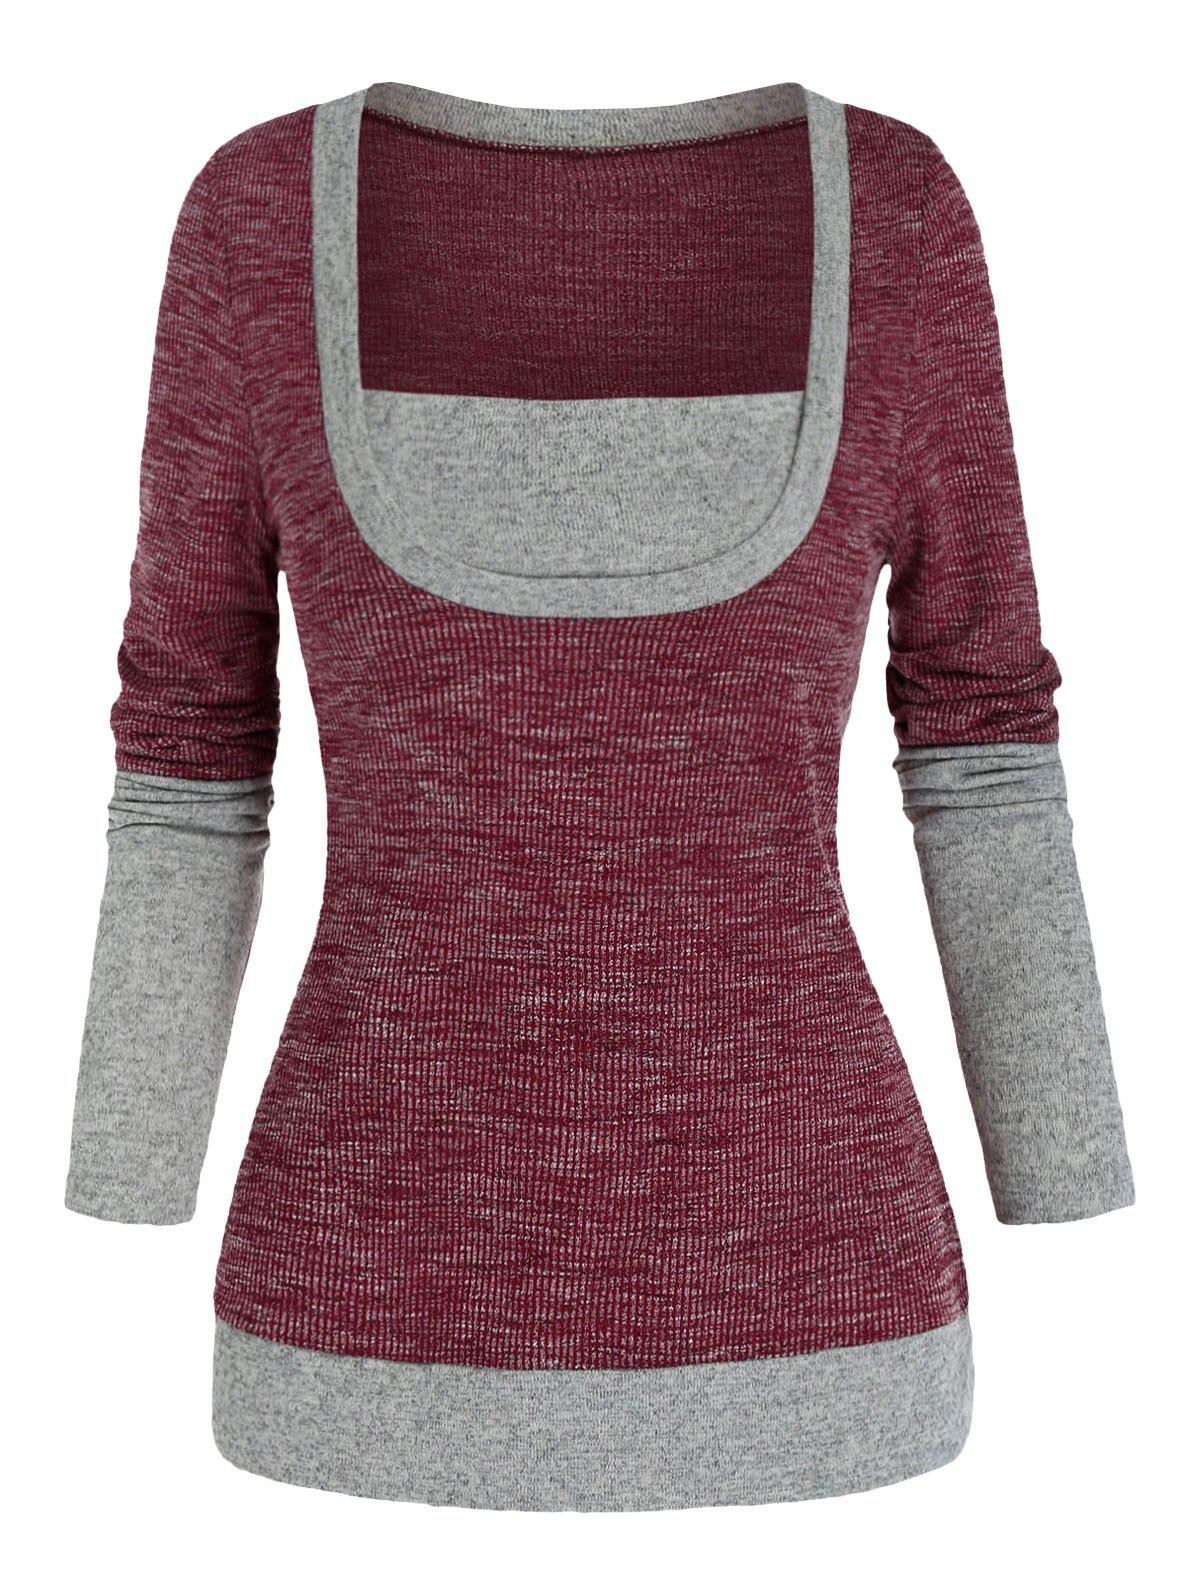 Contrast Trim Square Neck Knitted Long Sleeve T Shirt - RED WINE XL